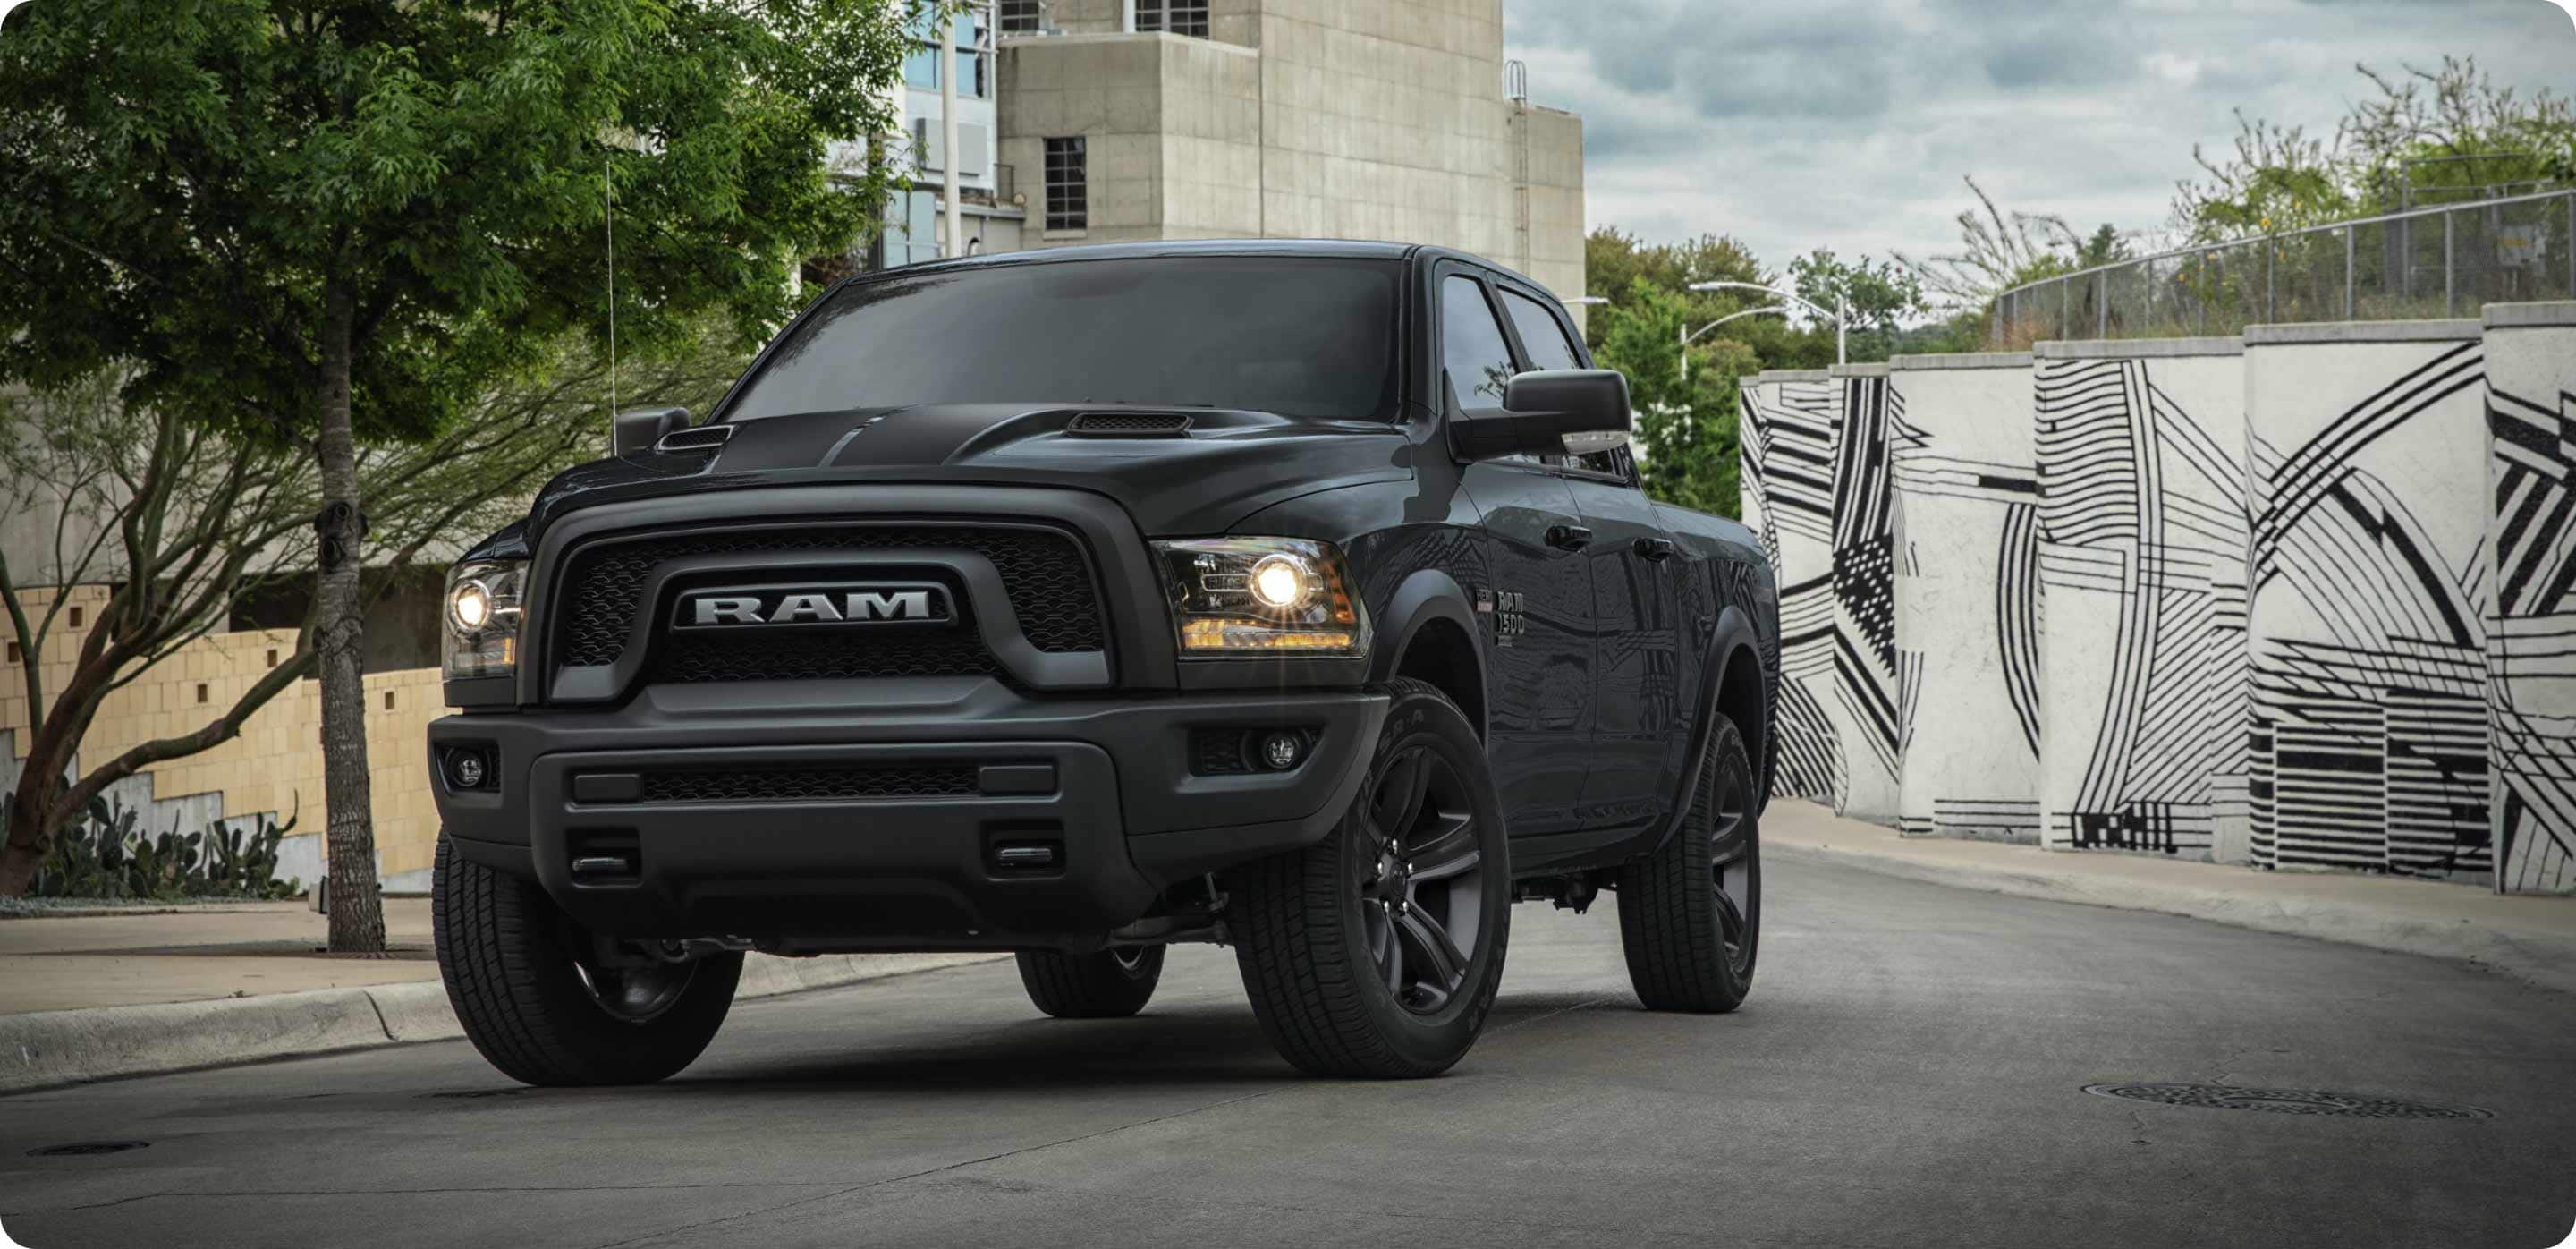 Display The 2021 Ram 1500 Classic Warlock being driven in an urban area with a large wall mural behind it.